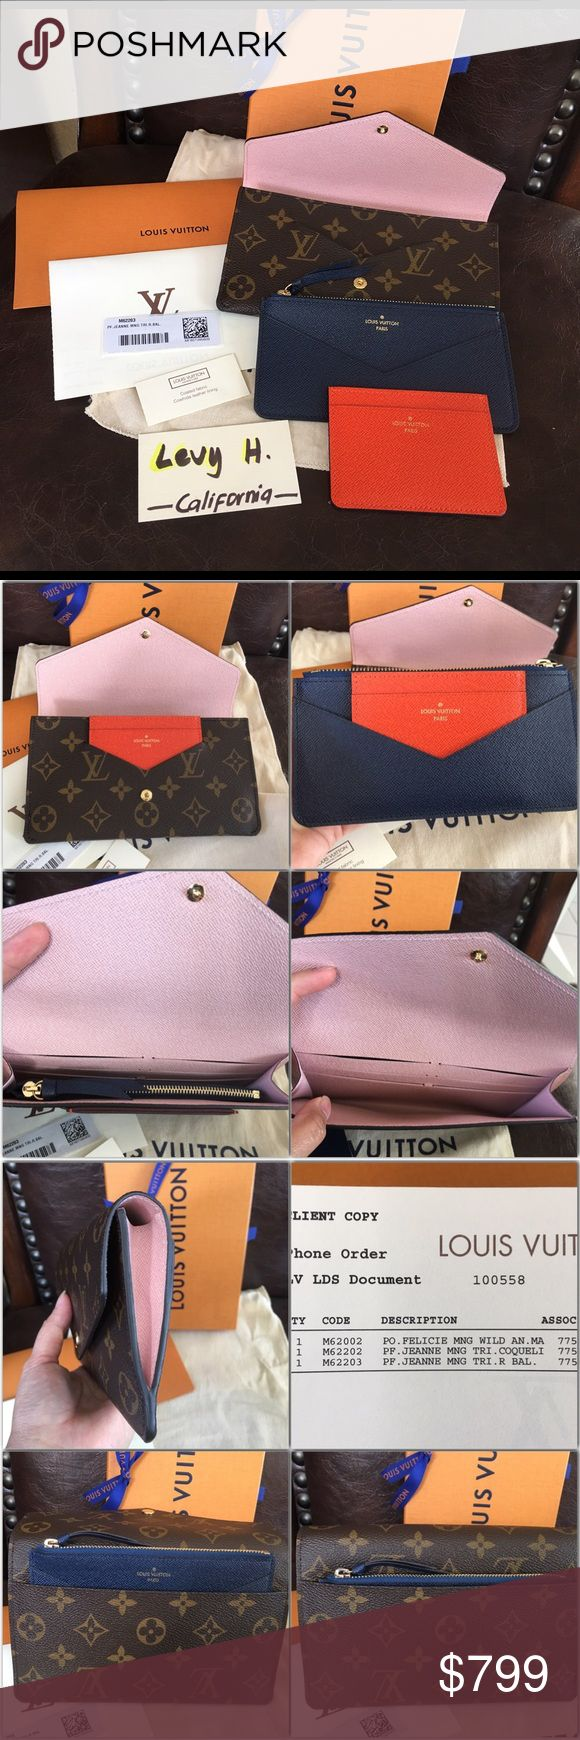 Authentic Louis Vuitton Jeanne Wallet Brand new never use wallet in rose ballerine interior, blue coin pouch and orange credit card holder. Smart and practical, the Jeanne Wallet in Monogram canvas offers endless possibilities. This envelop wallet in Monogram canvas is both ultra feminine and highly adaptable thanks to its three-in-one construction with removable card holder and coin pocket. Price is firm and no trade. Louis Vuitton Bags Wallets